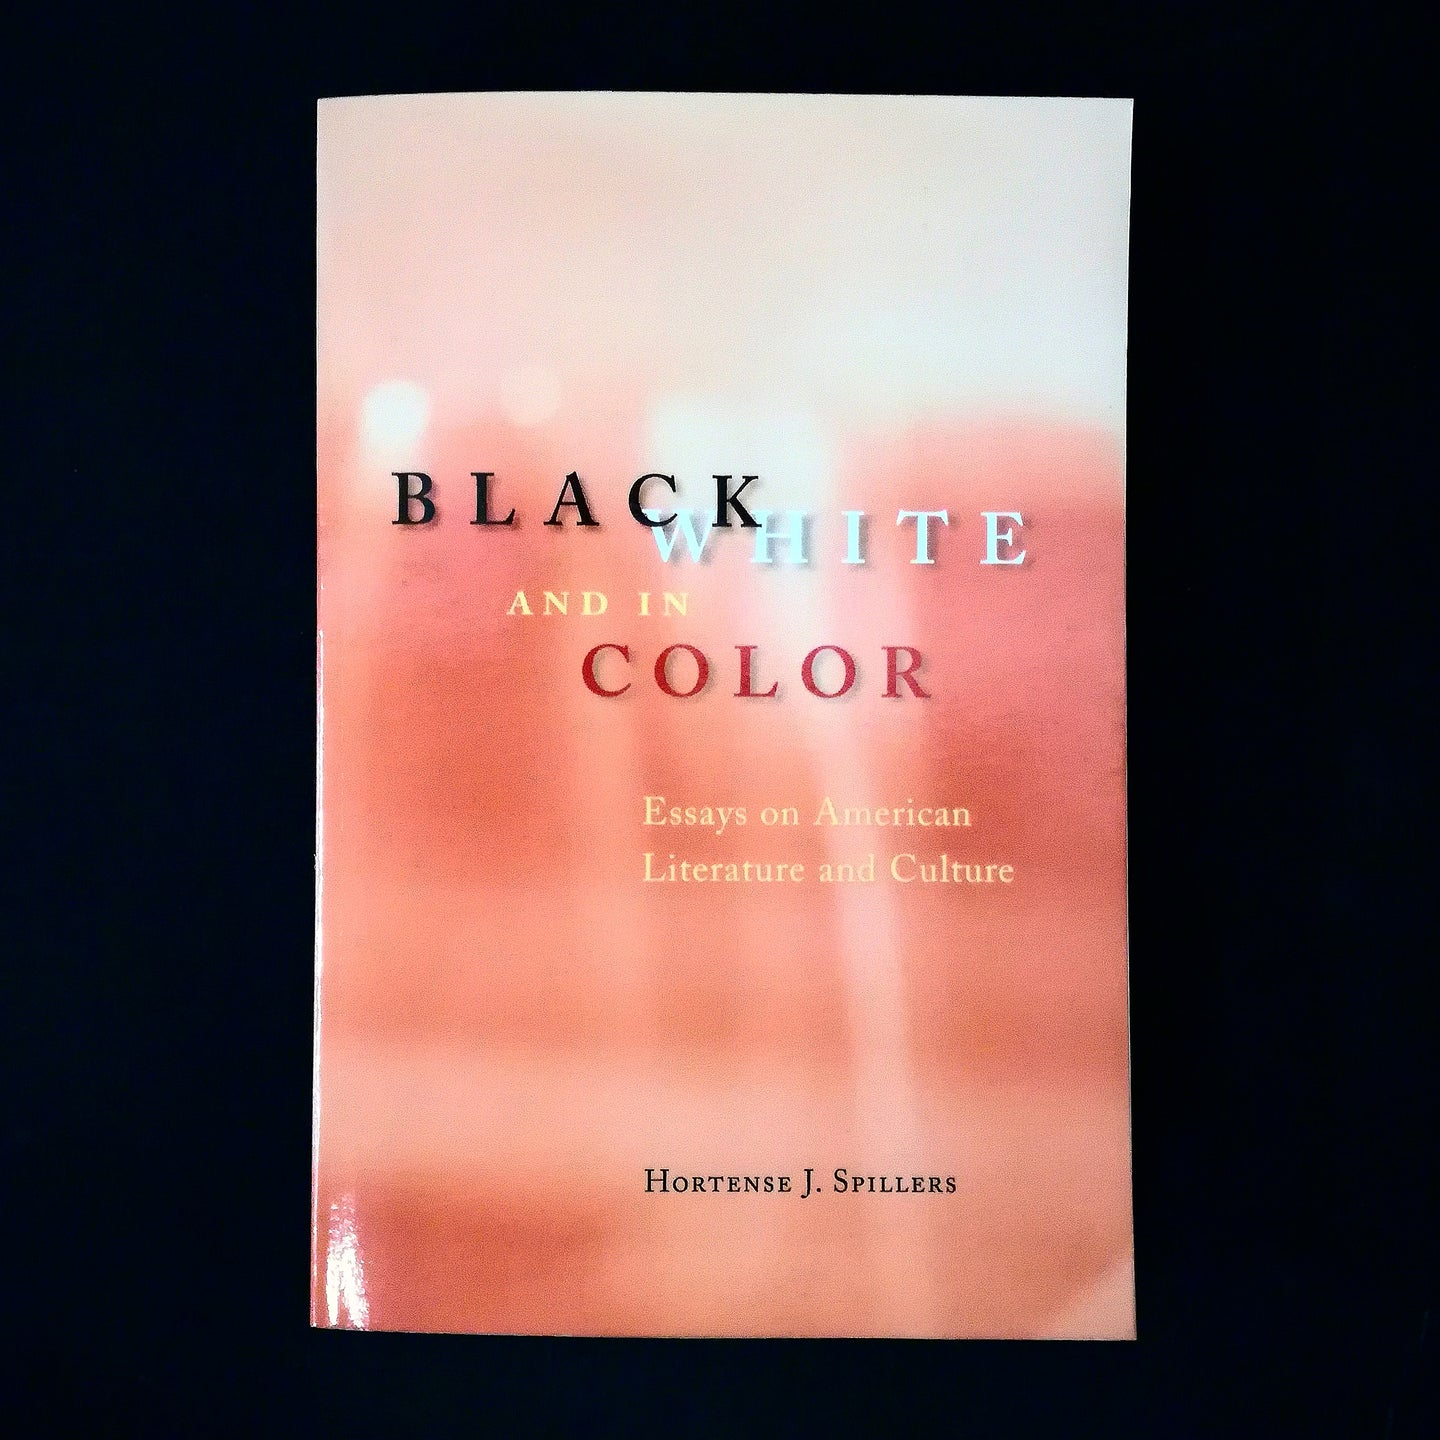 Hortense J. Spillers: Black, White and In Color